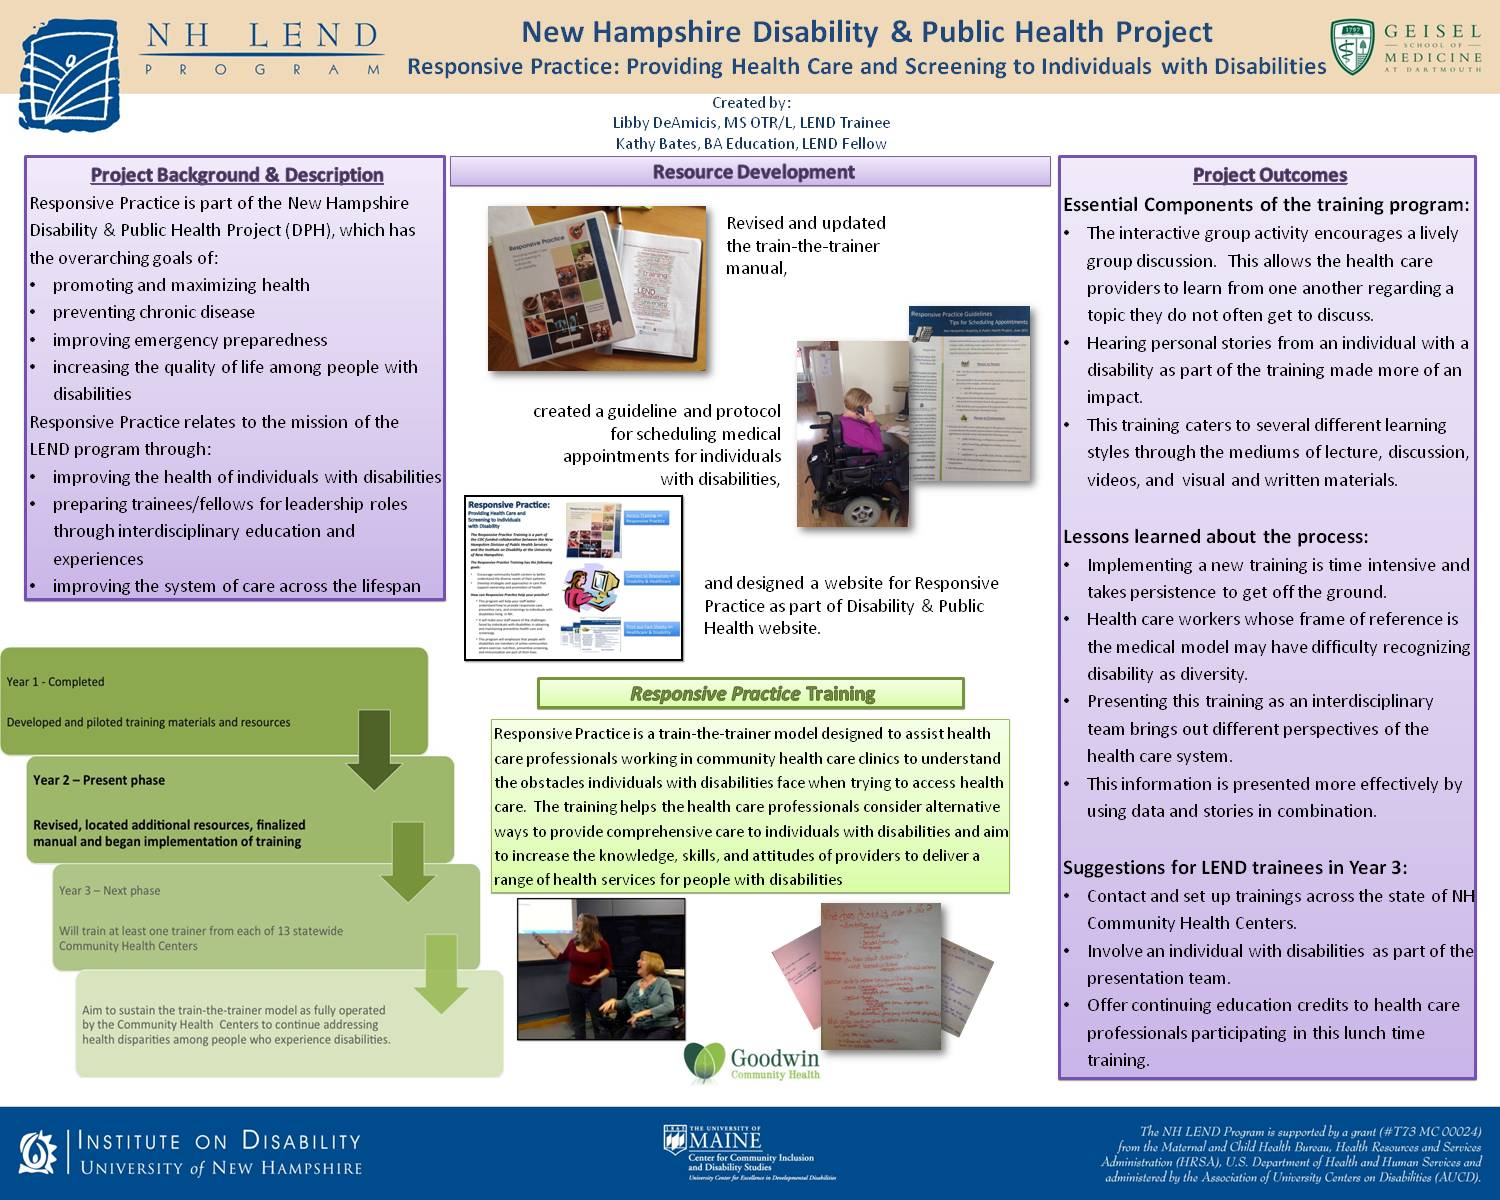 New Hampshire Disability & Public Health Project Responsive Practice: Health Care And Screenings To Individuals With Disabilities  by emp55